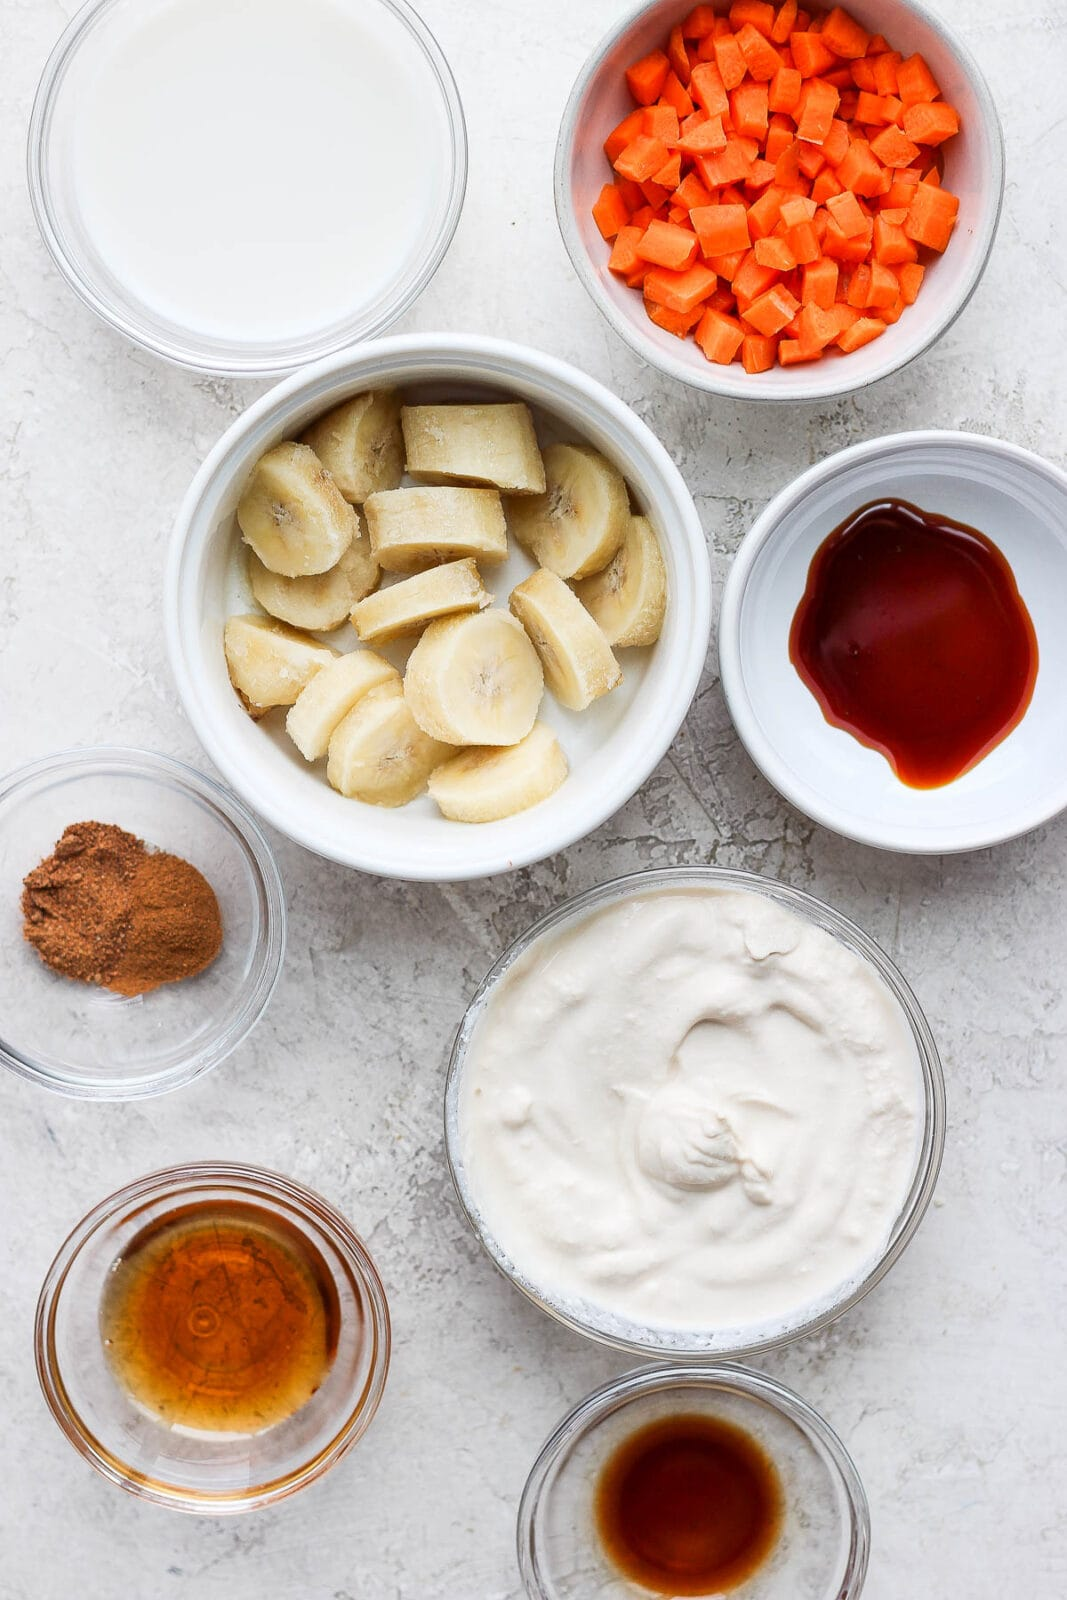 Ingredients for carrot cake smoothie separated in white bowls.